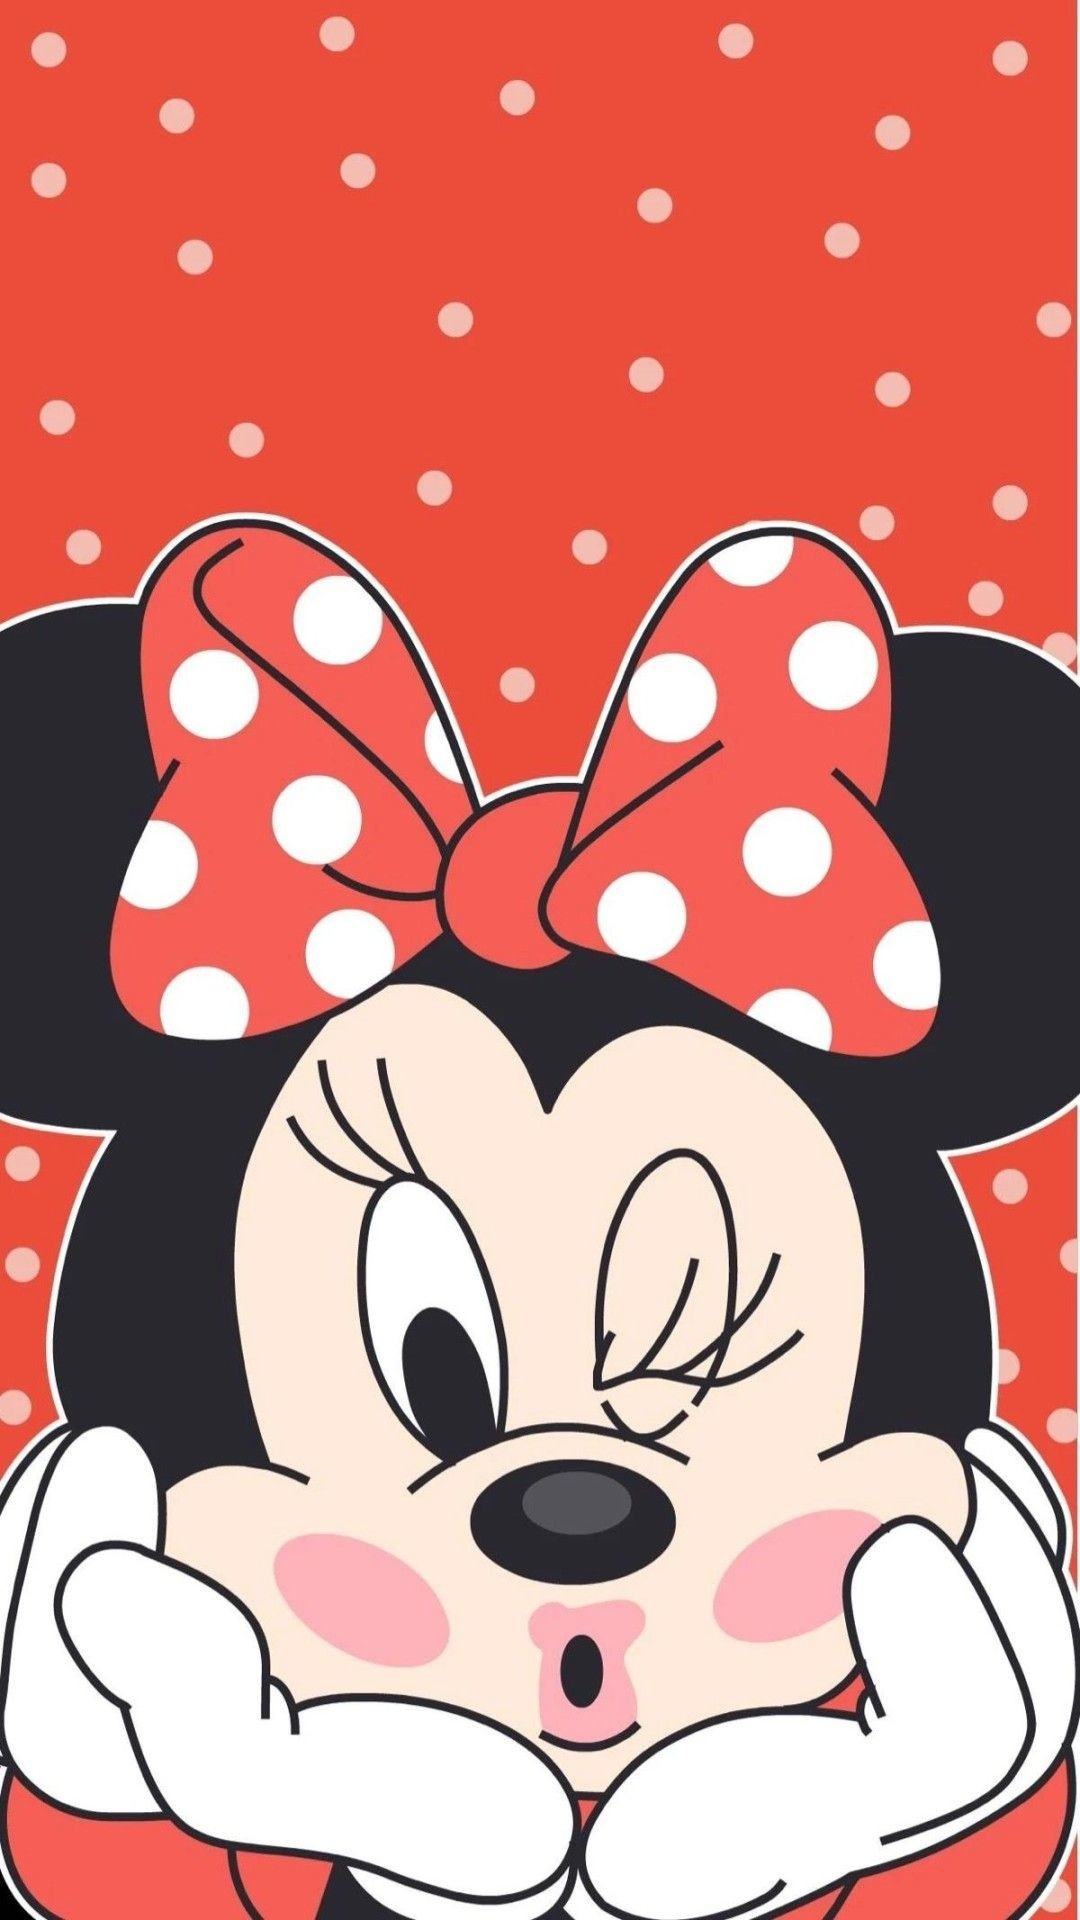 1080x1920 Cute Minnie Wall Funny Wallpapers, Best Iphone Wallpapers, Smartphone  Hintergrund, Mickey Minnie Mouse